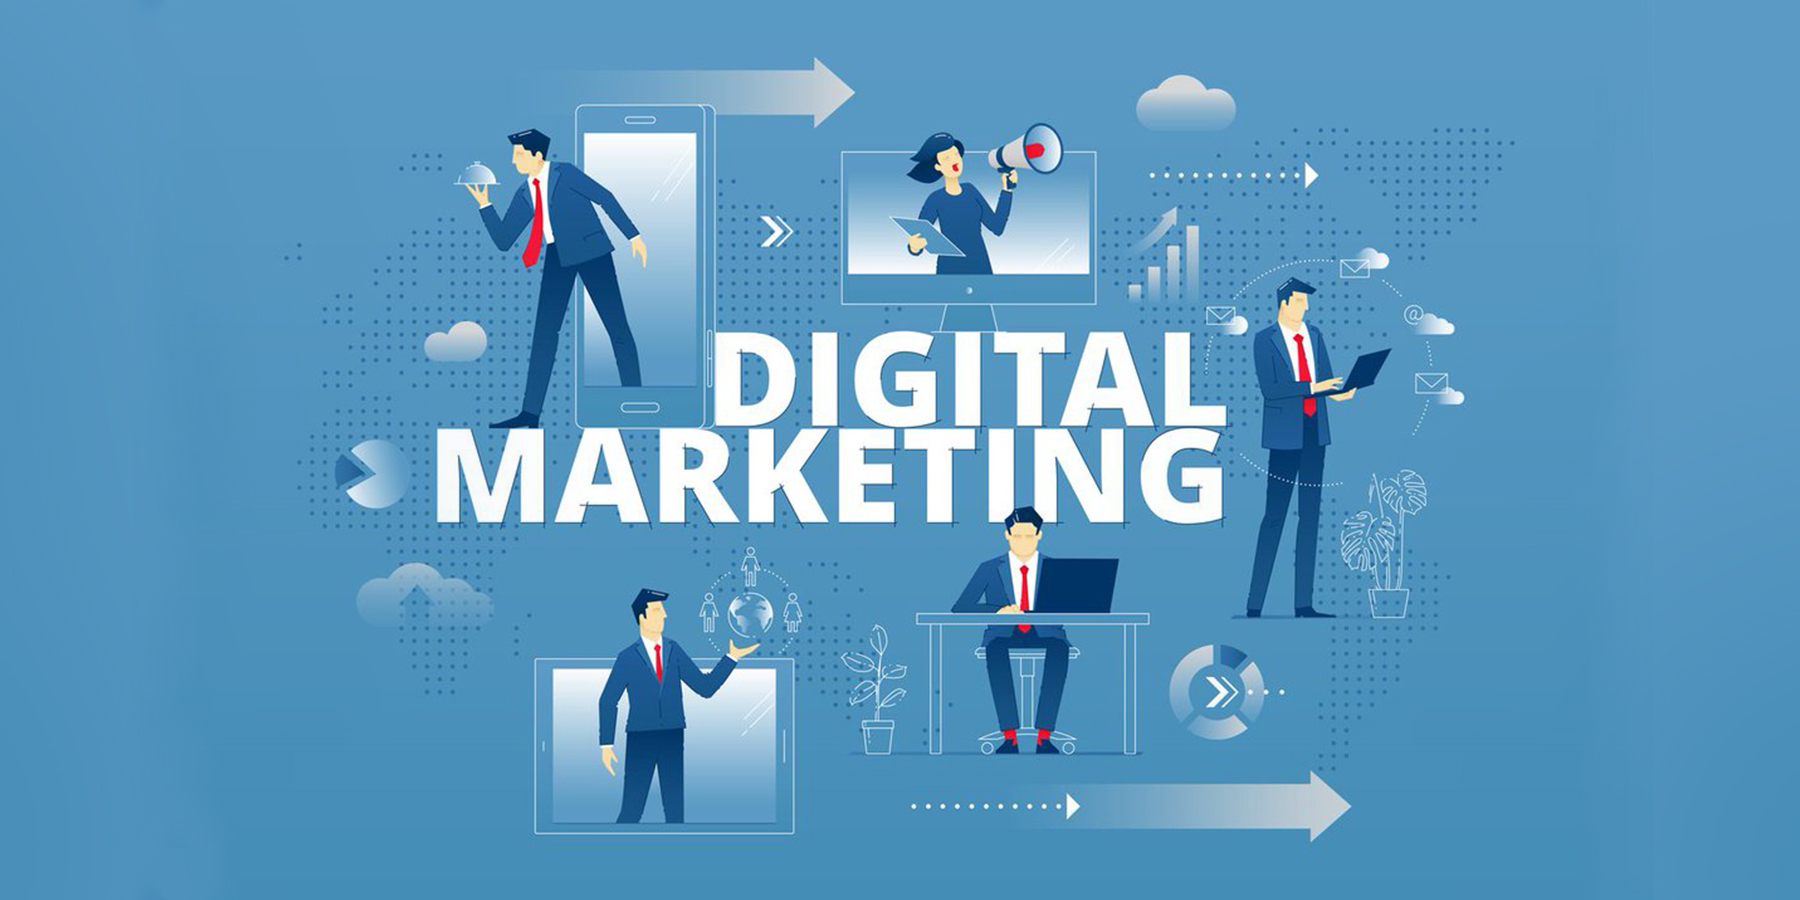 Four reasons to hire a digital marketing agency -